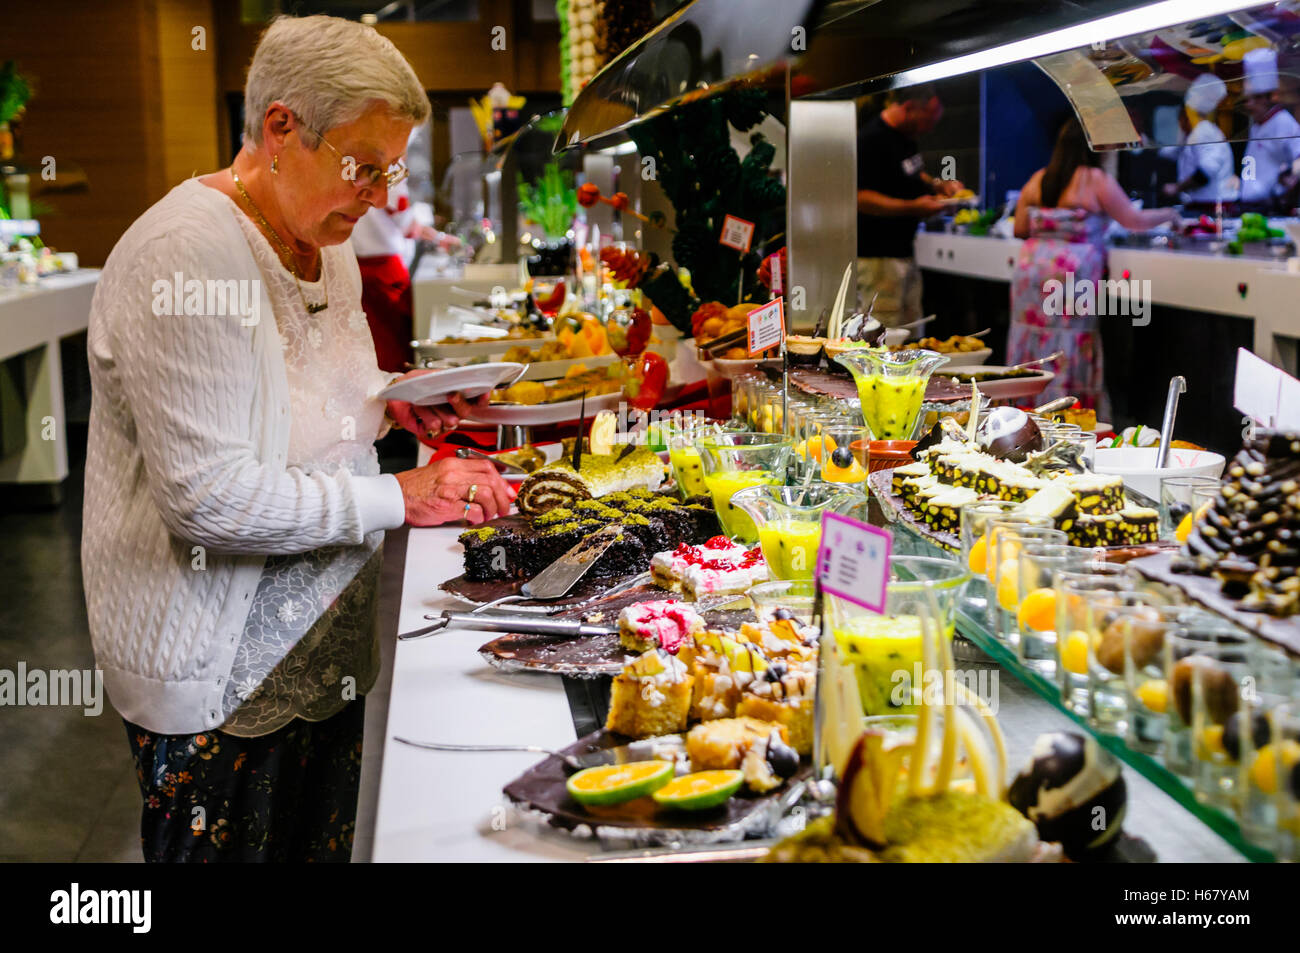 Dessets consisting of cakes, mousses and fruit at the buffet of a hotel restaurant - Stock Image